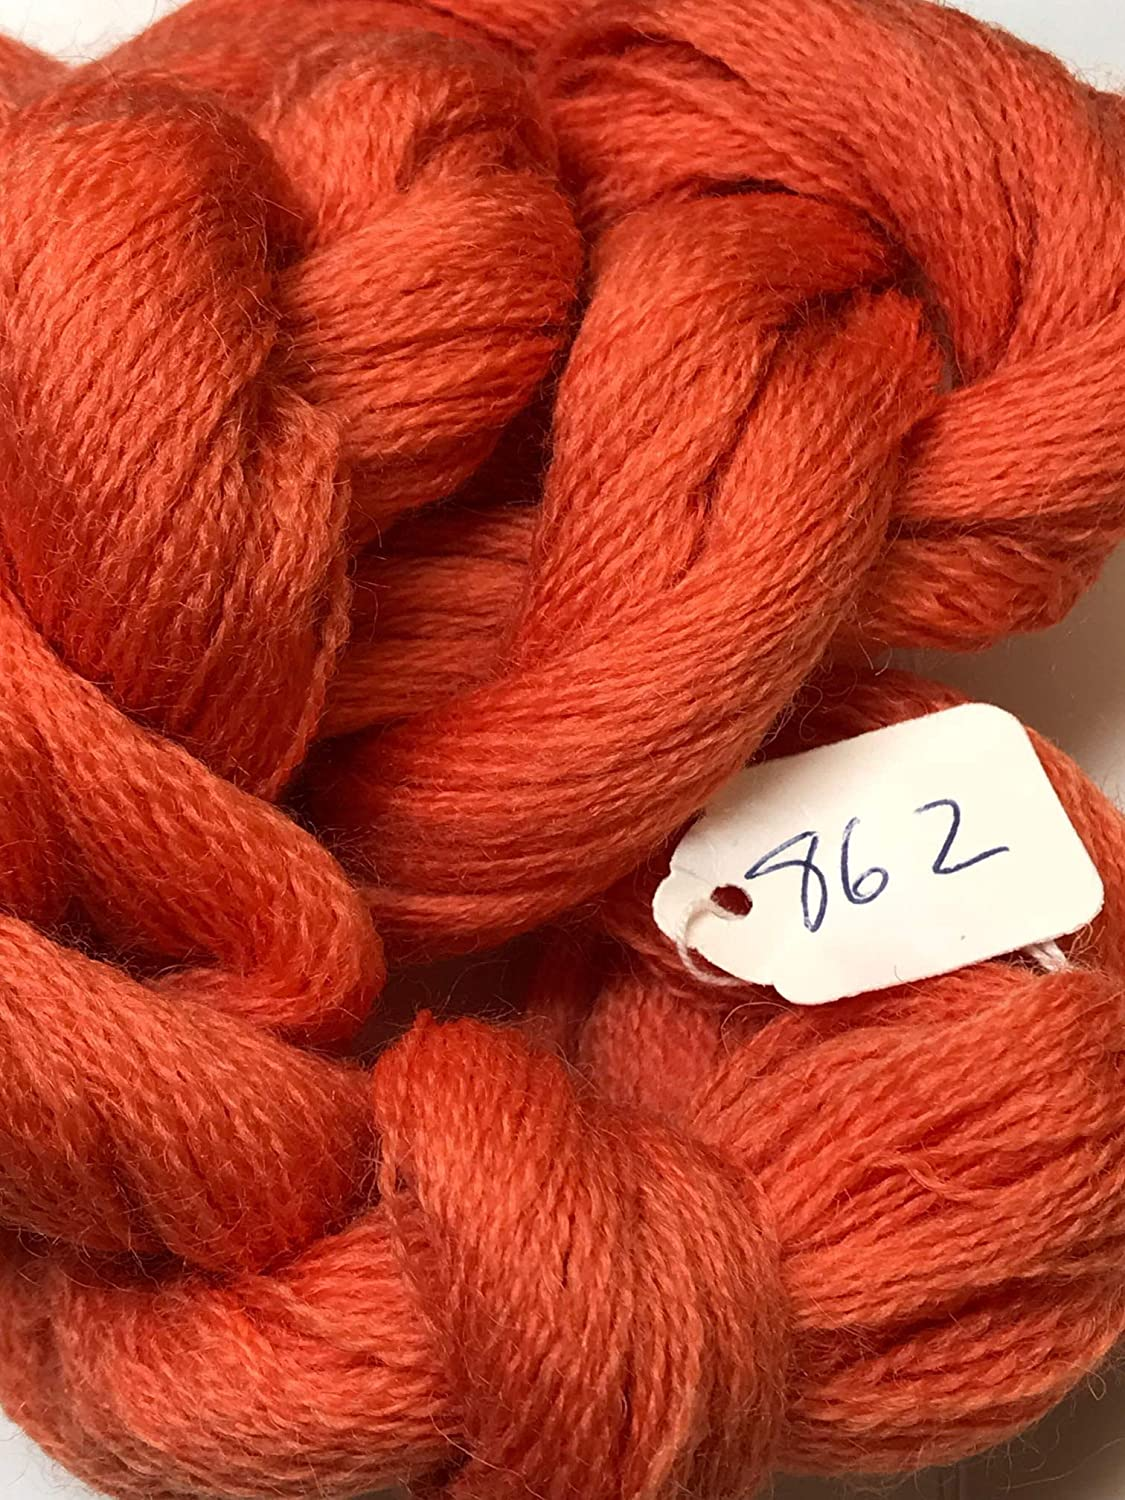 Appleton Needlepoint Crewel Wool-Color 862-CORAL-1 FULL HANK WITH THIS OFFER